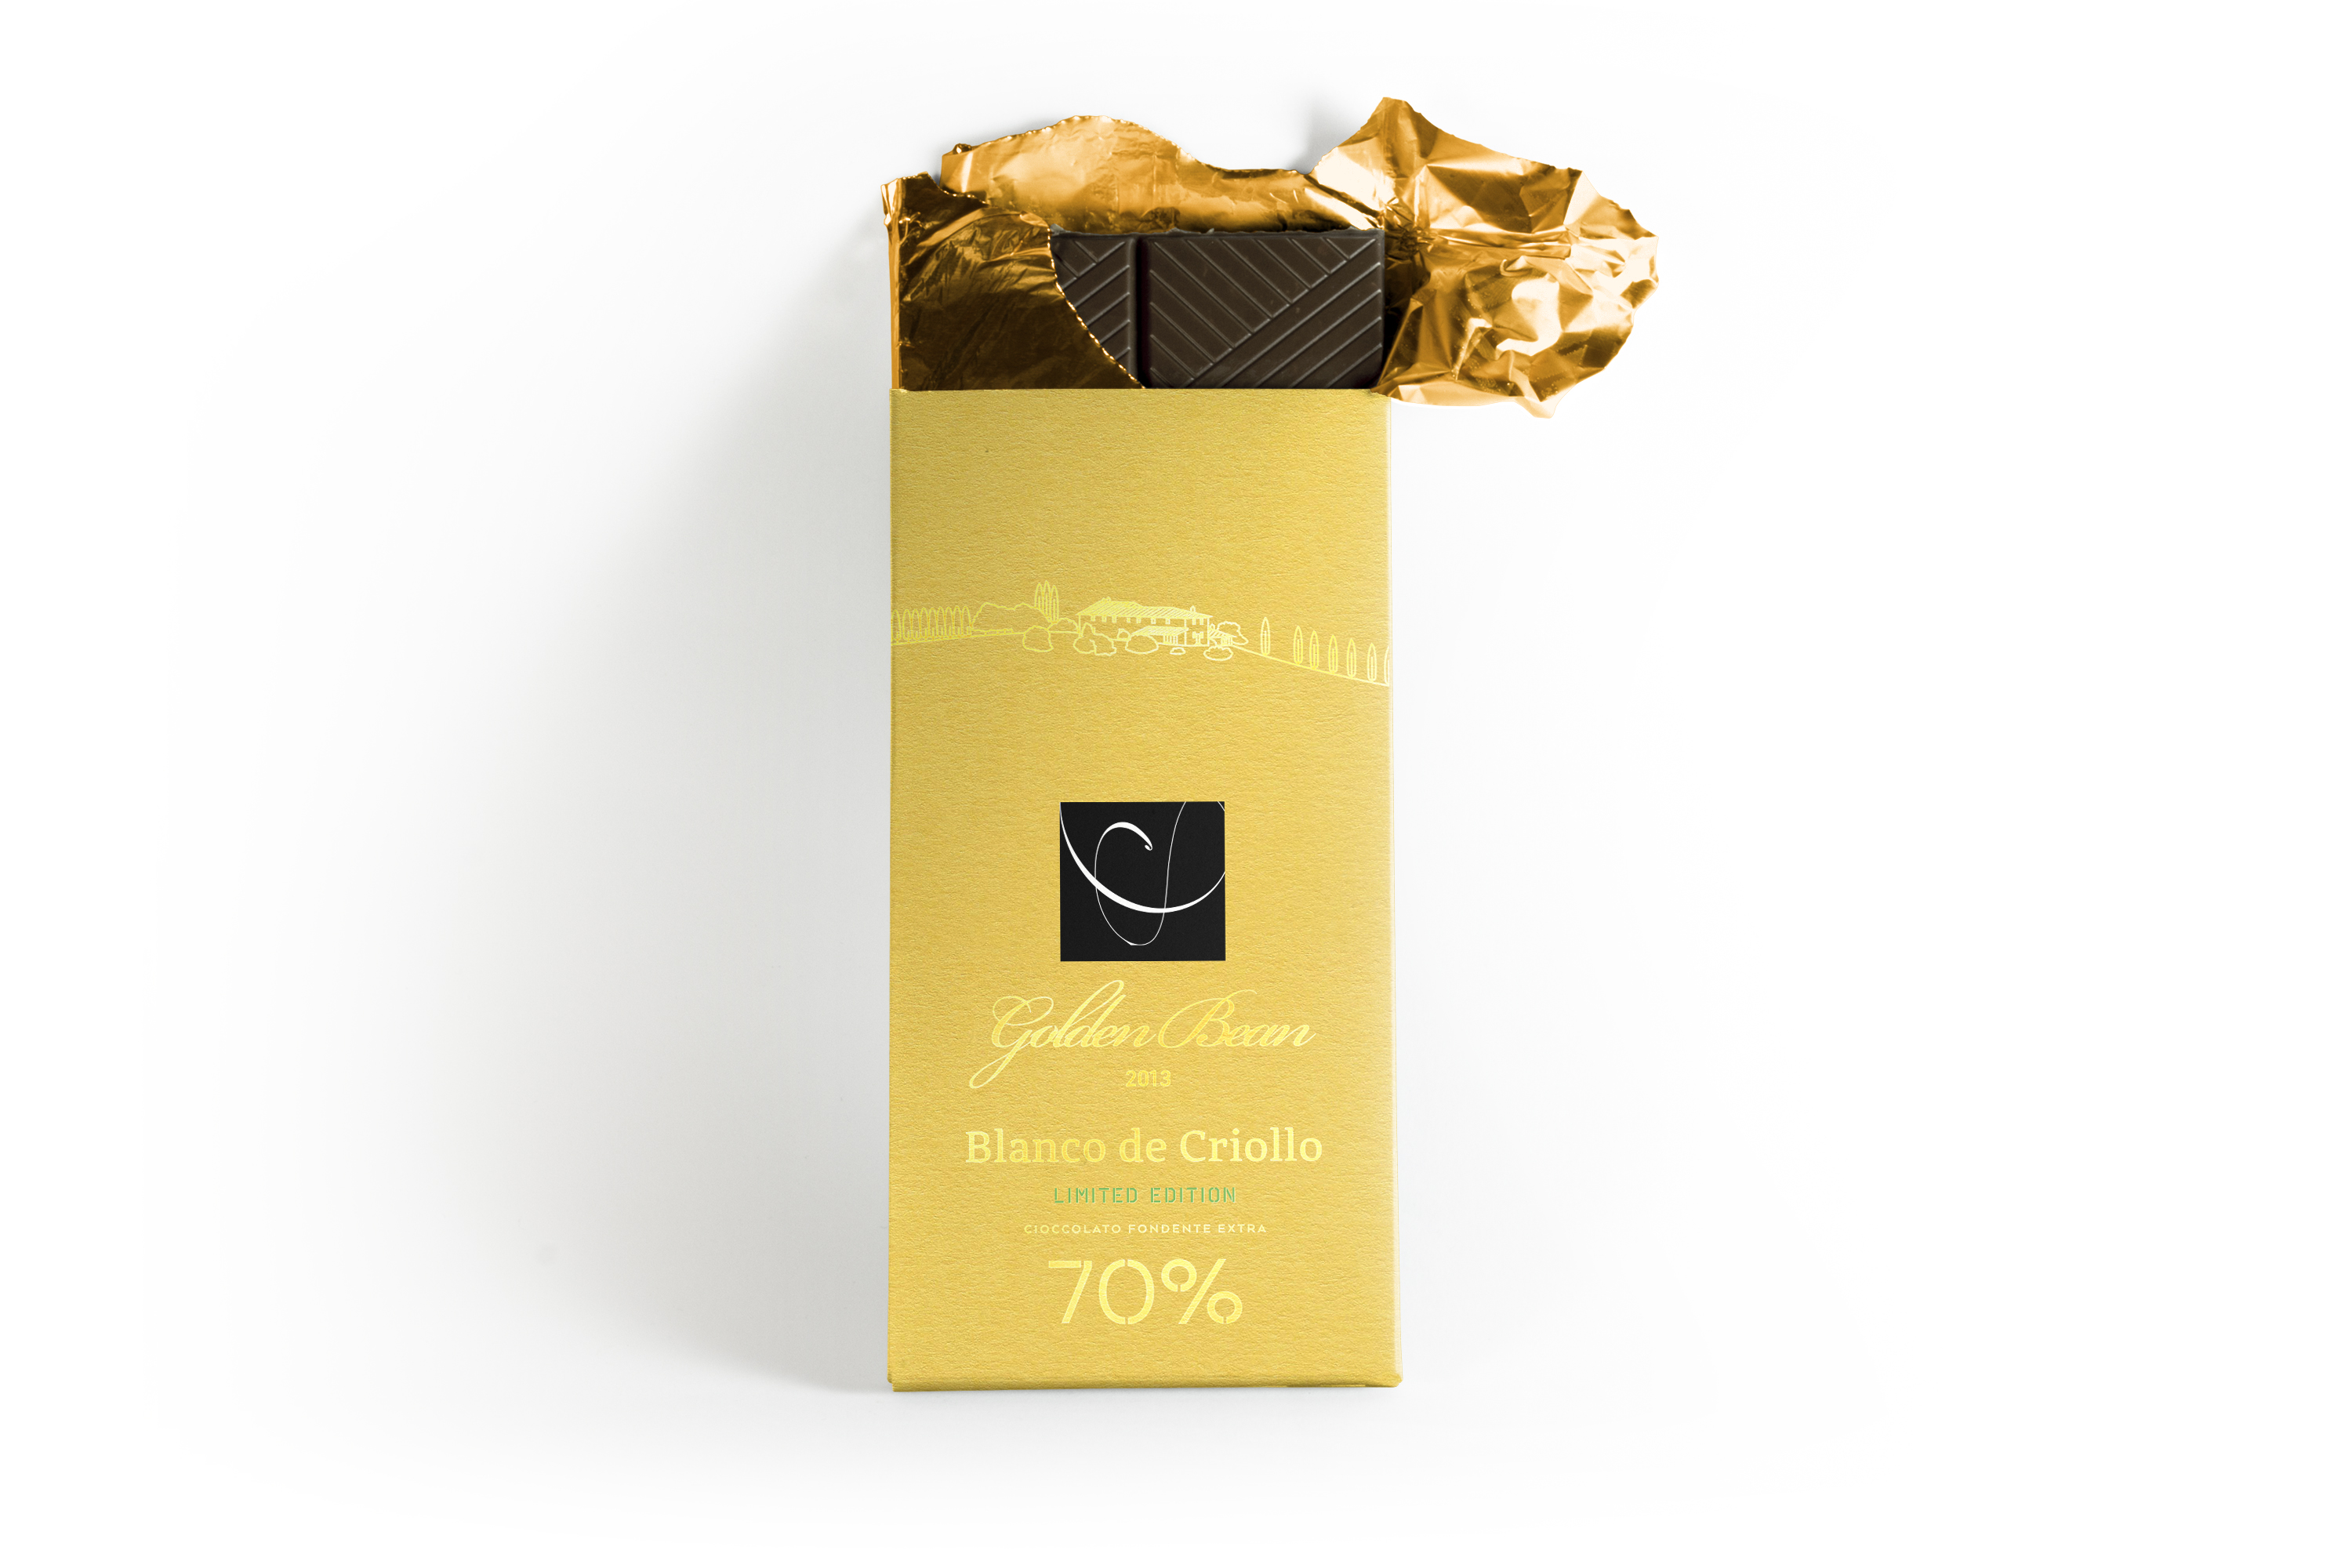 Amedei Chocolate packaging proposal